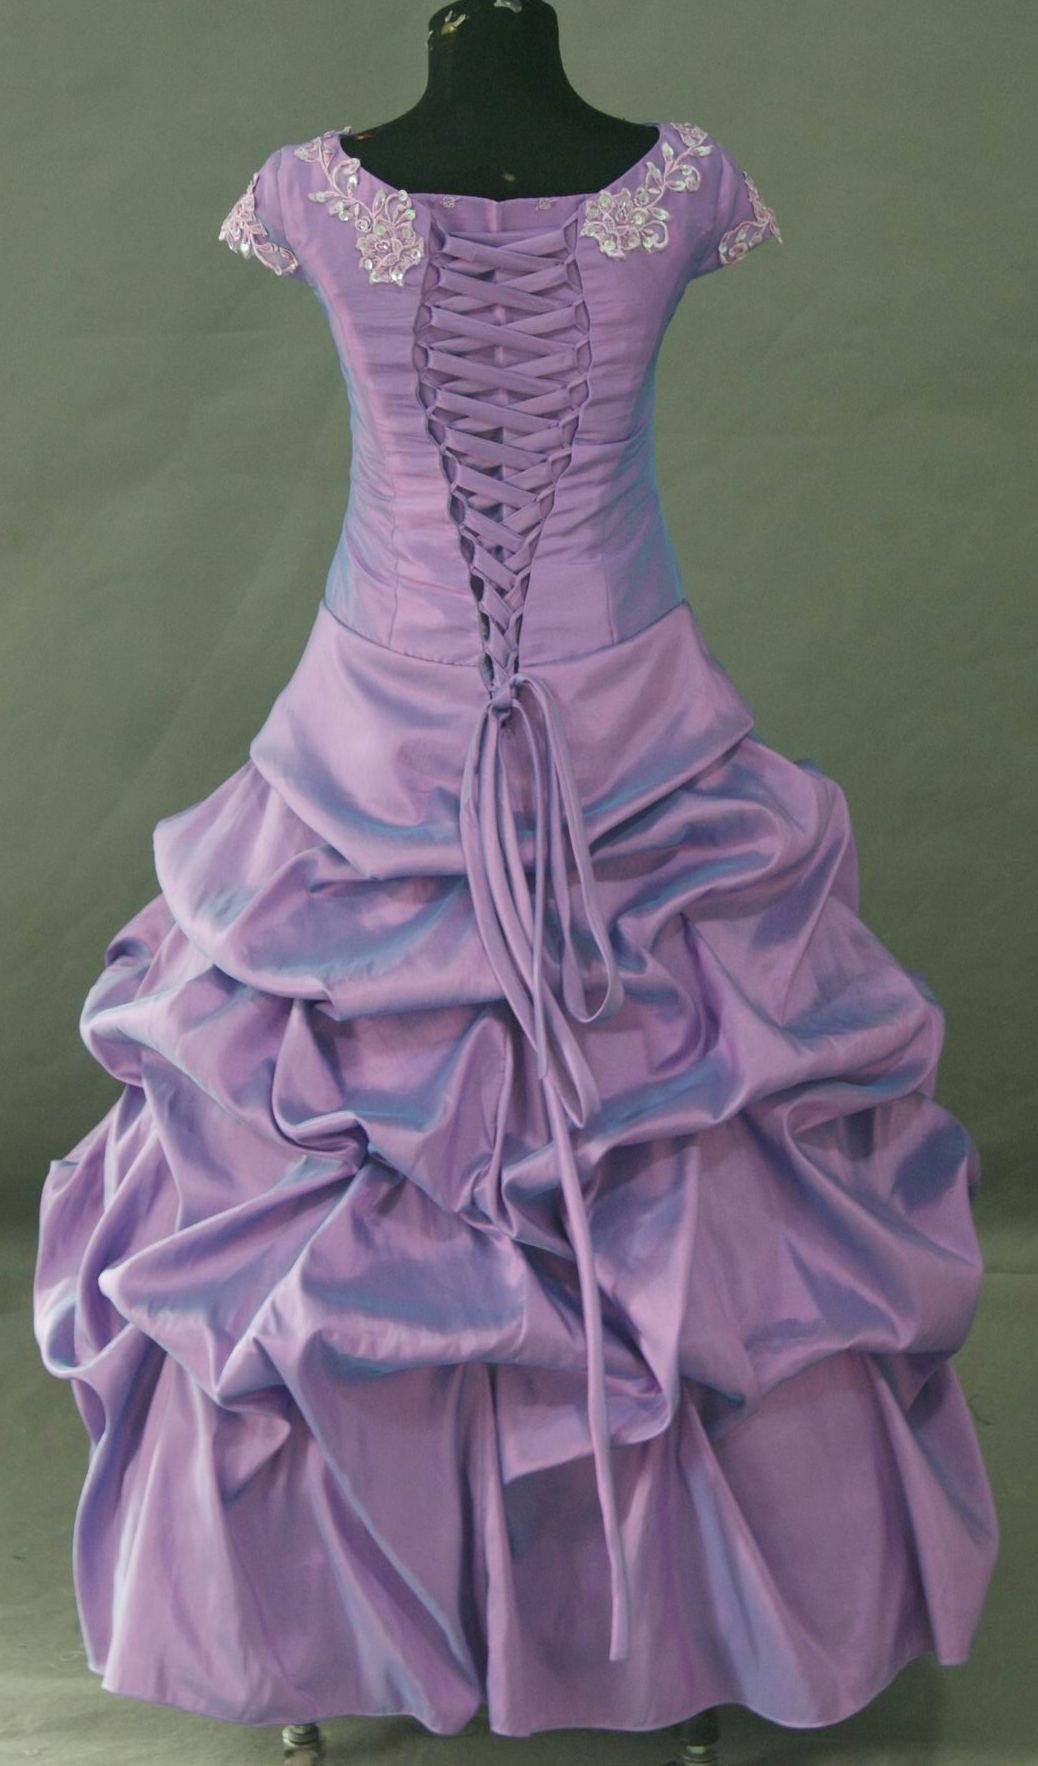 purple childrens ball gown gathered skirt